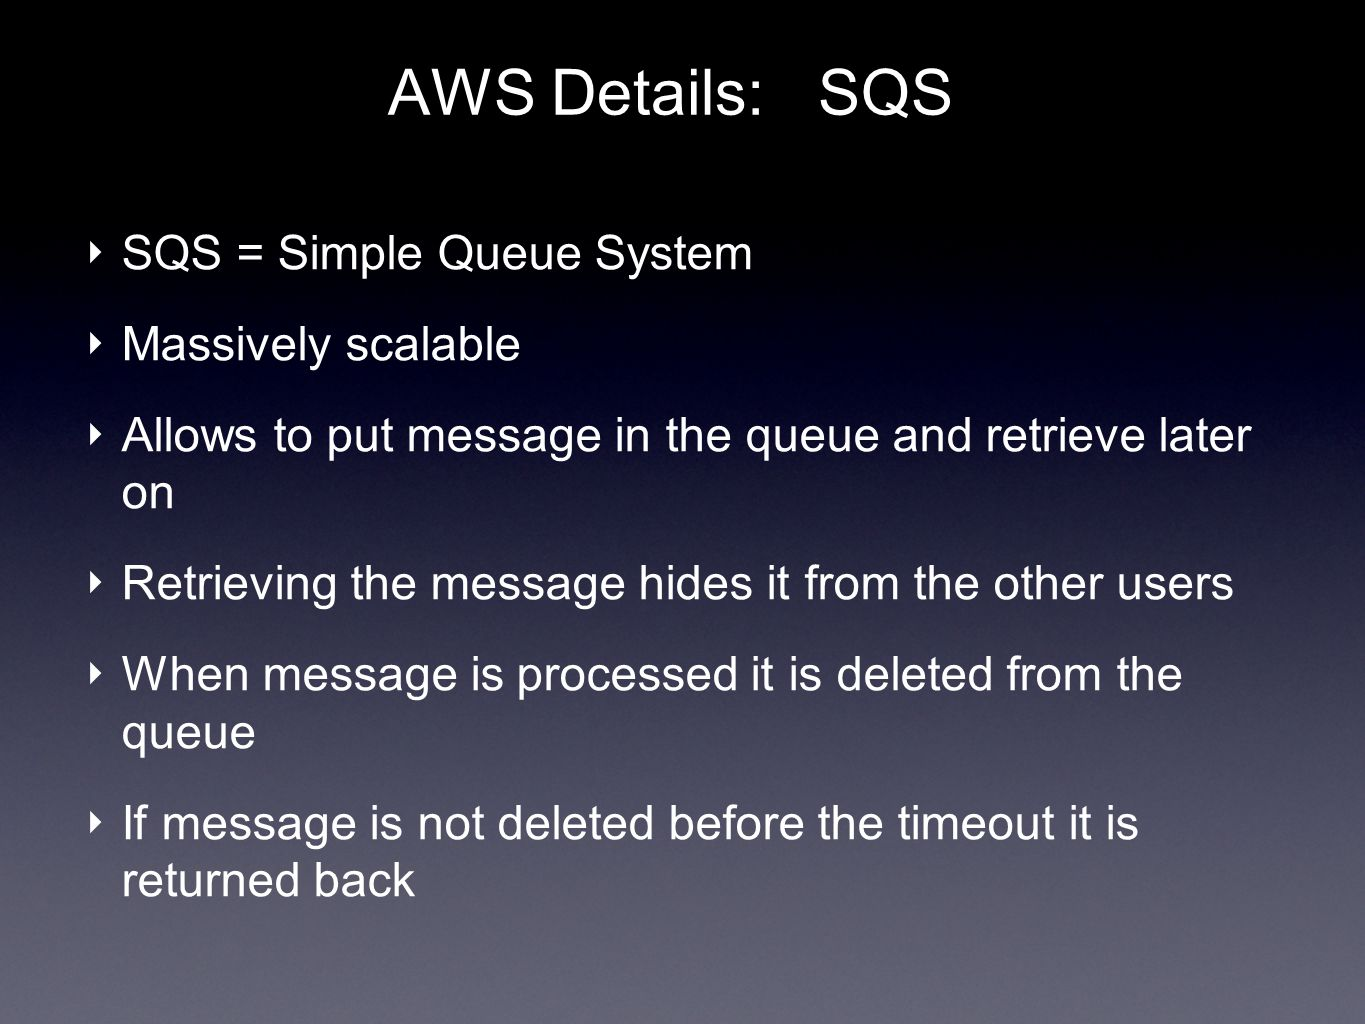 AWS Details: SQS SQS = Simple Queue System Massively scalable Allows to put message in the queue and retrieve later on Retrieving the message hides it from the other users When message is processed it is deleted from the queue If message is not deleted before the timeout it is returned back